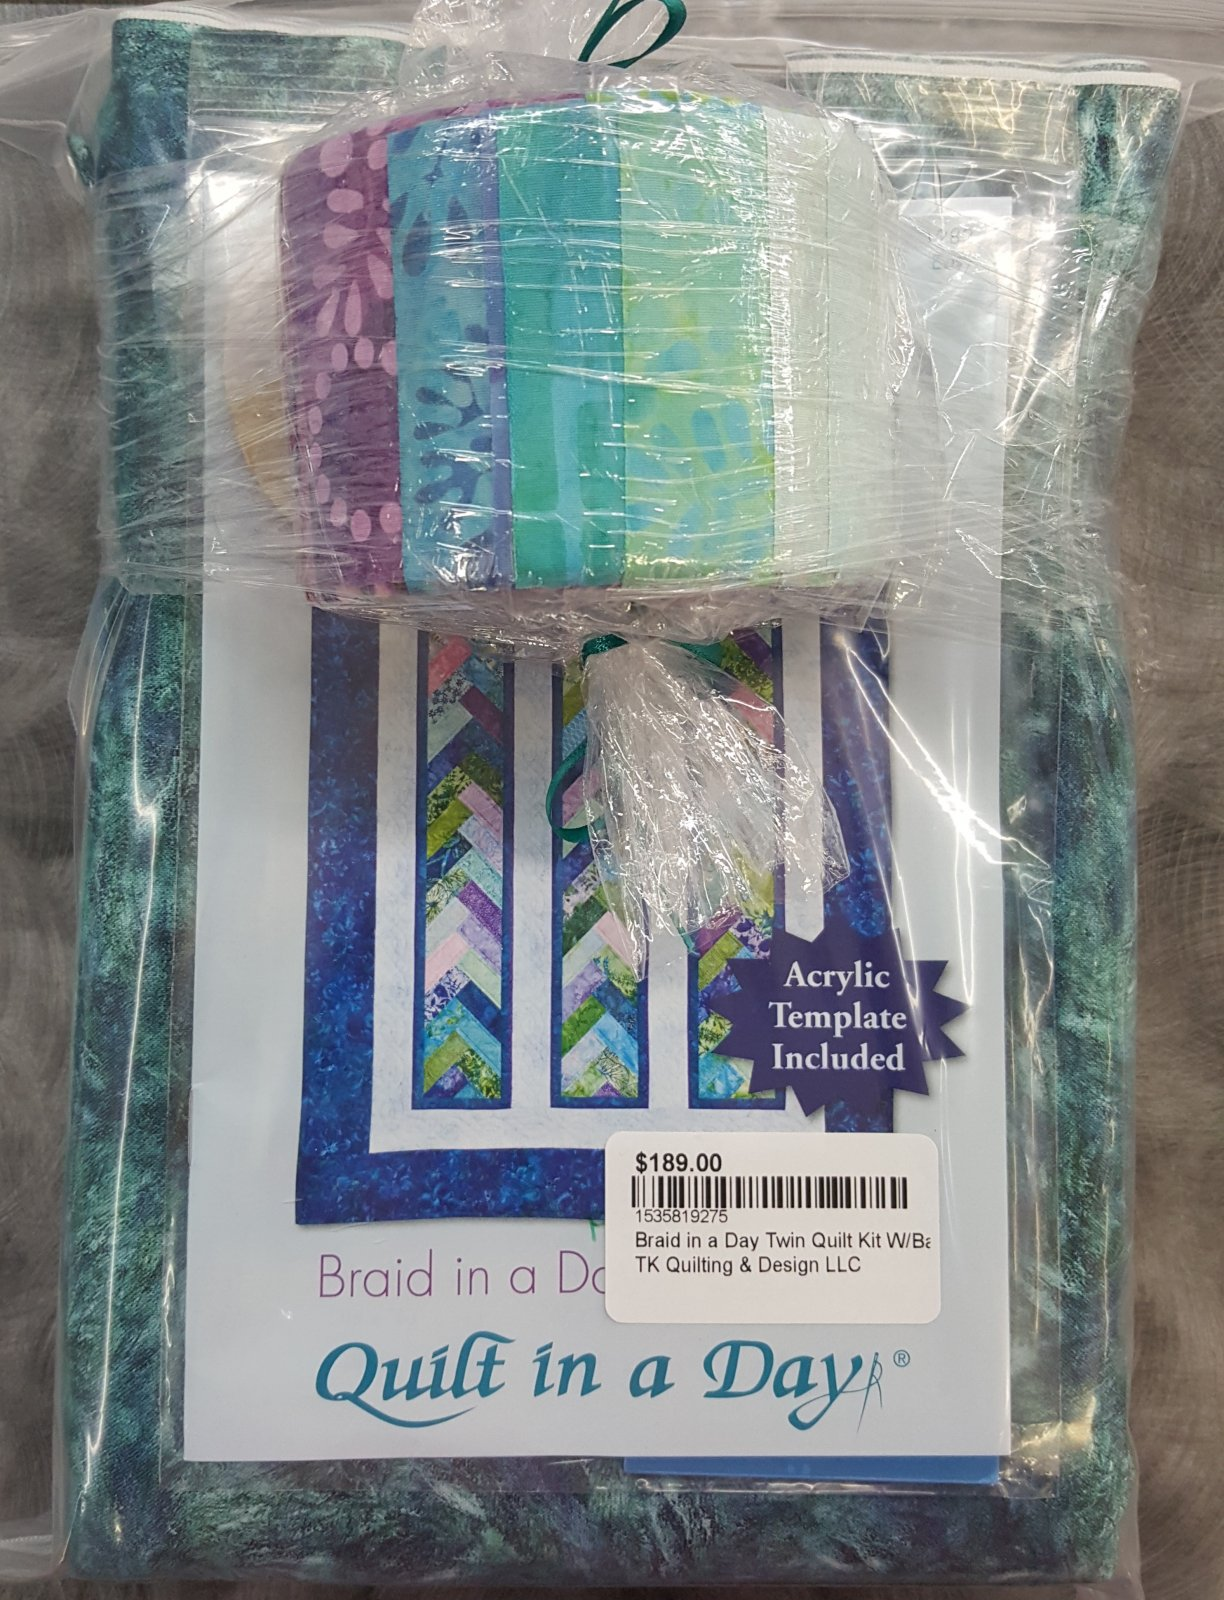 Braid in a Day Twin Quilt Kit W/Back